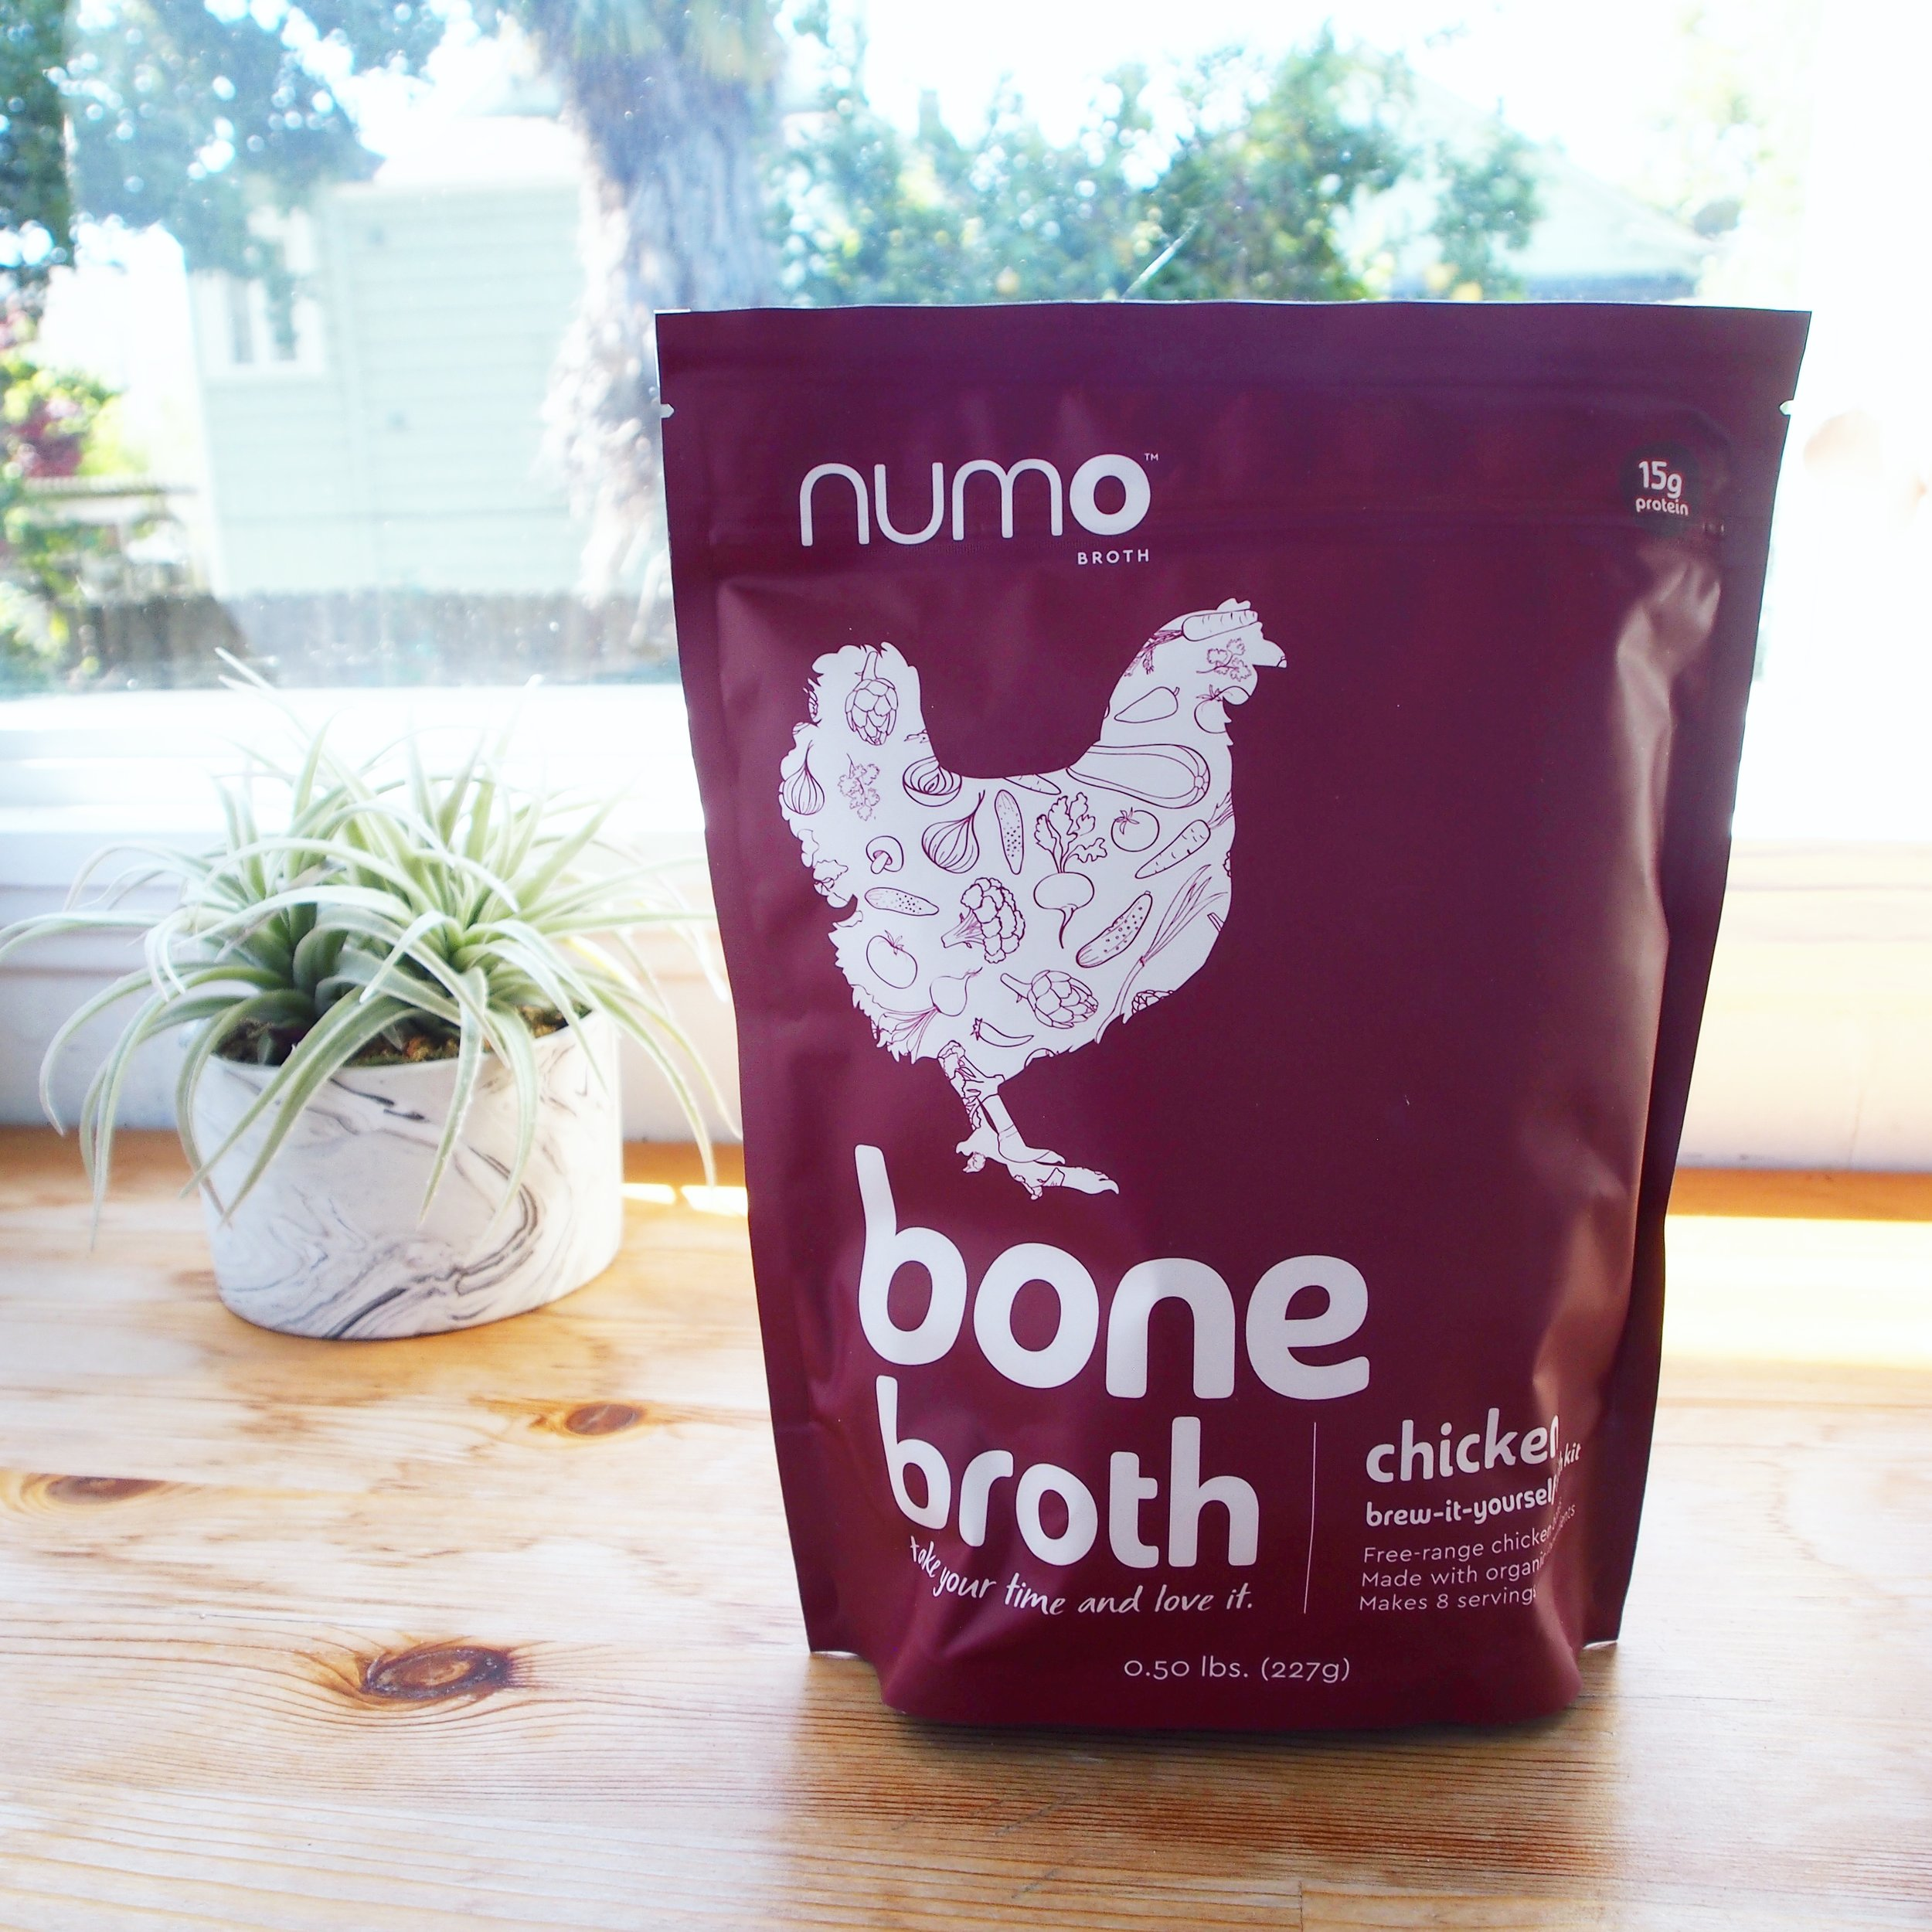 Numo's Chicken Bone Broth is a very easy broth to make and perfect for ramen recipes because it's cooked overnight with little hands-on time!